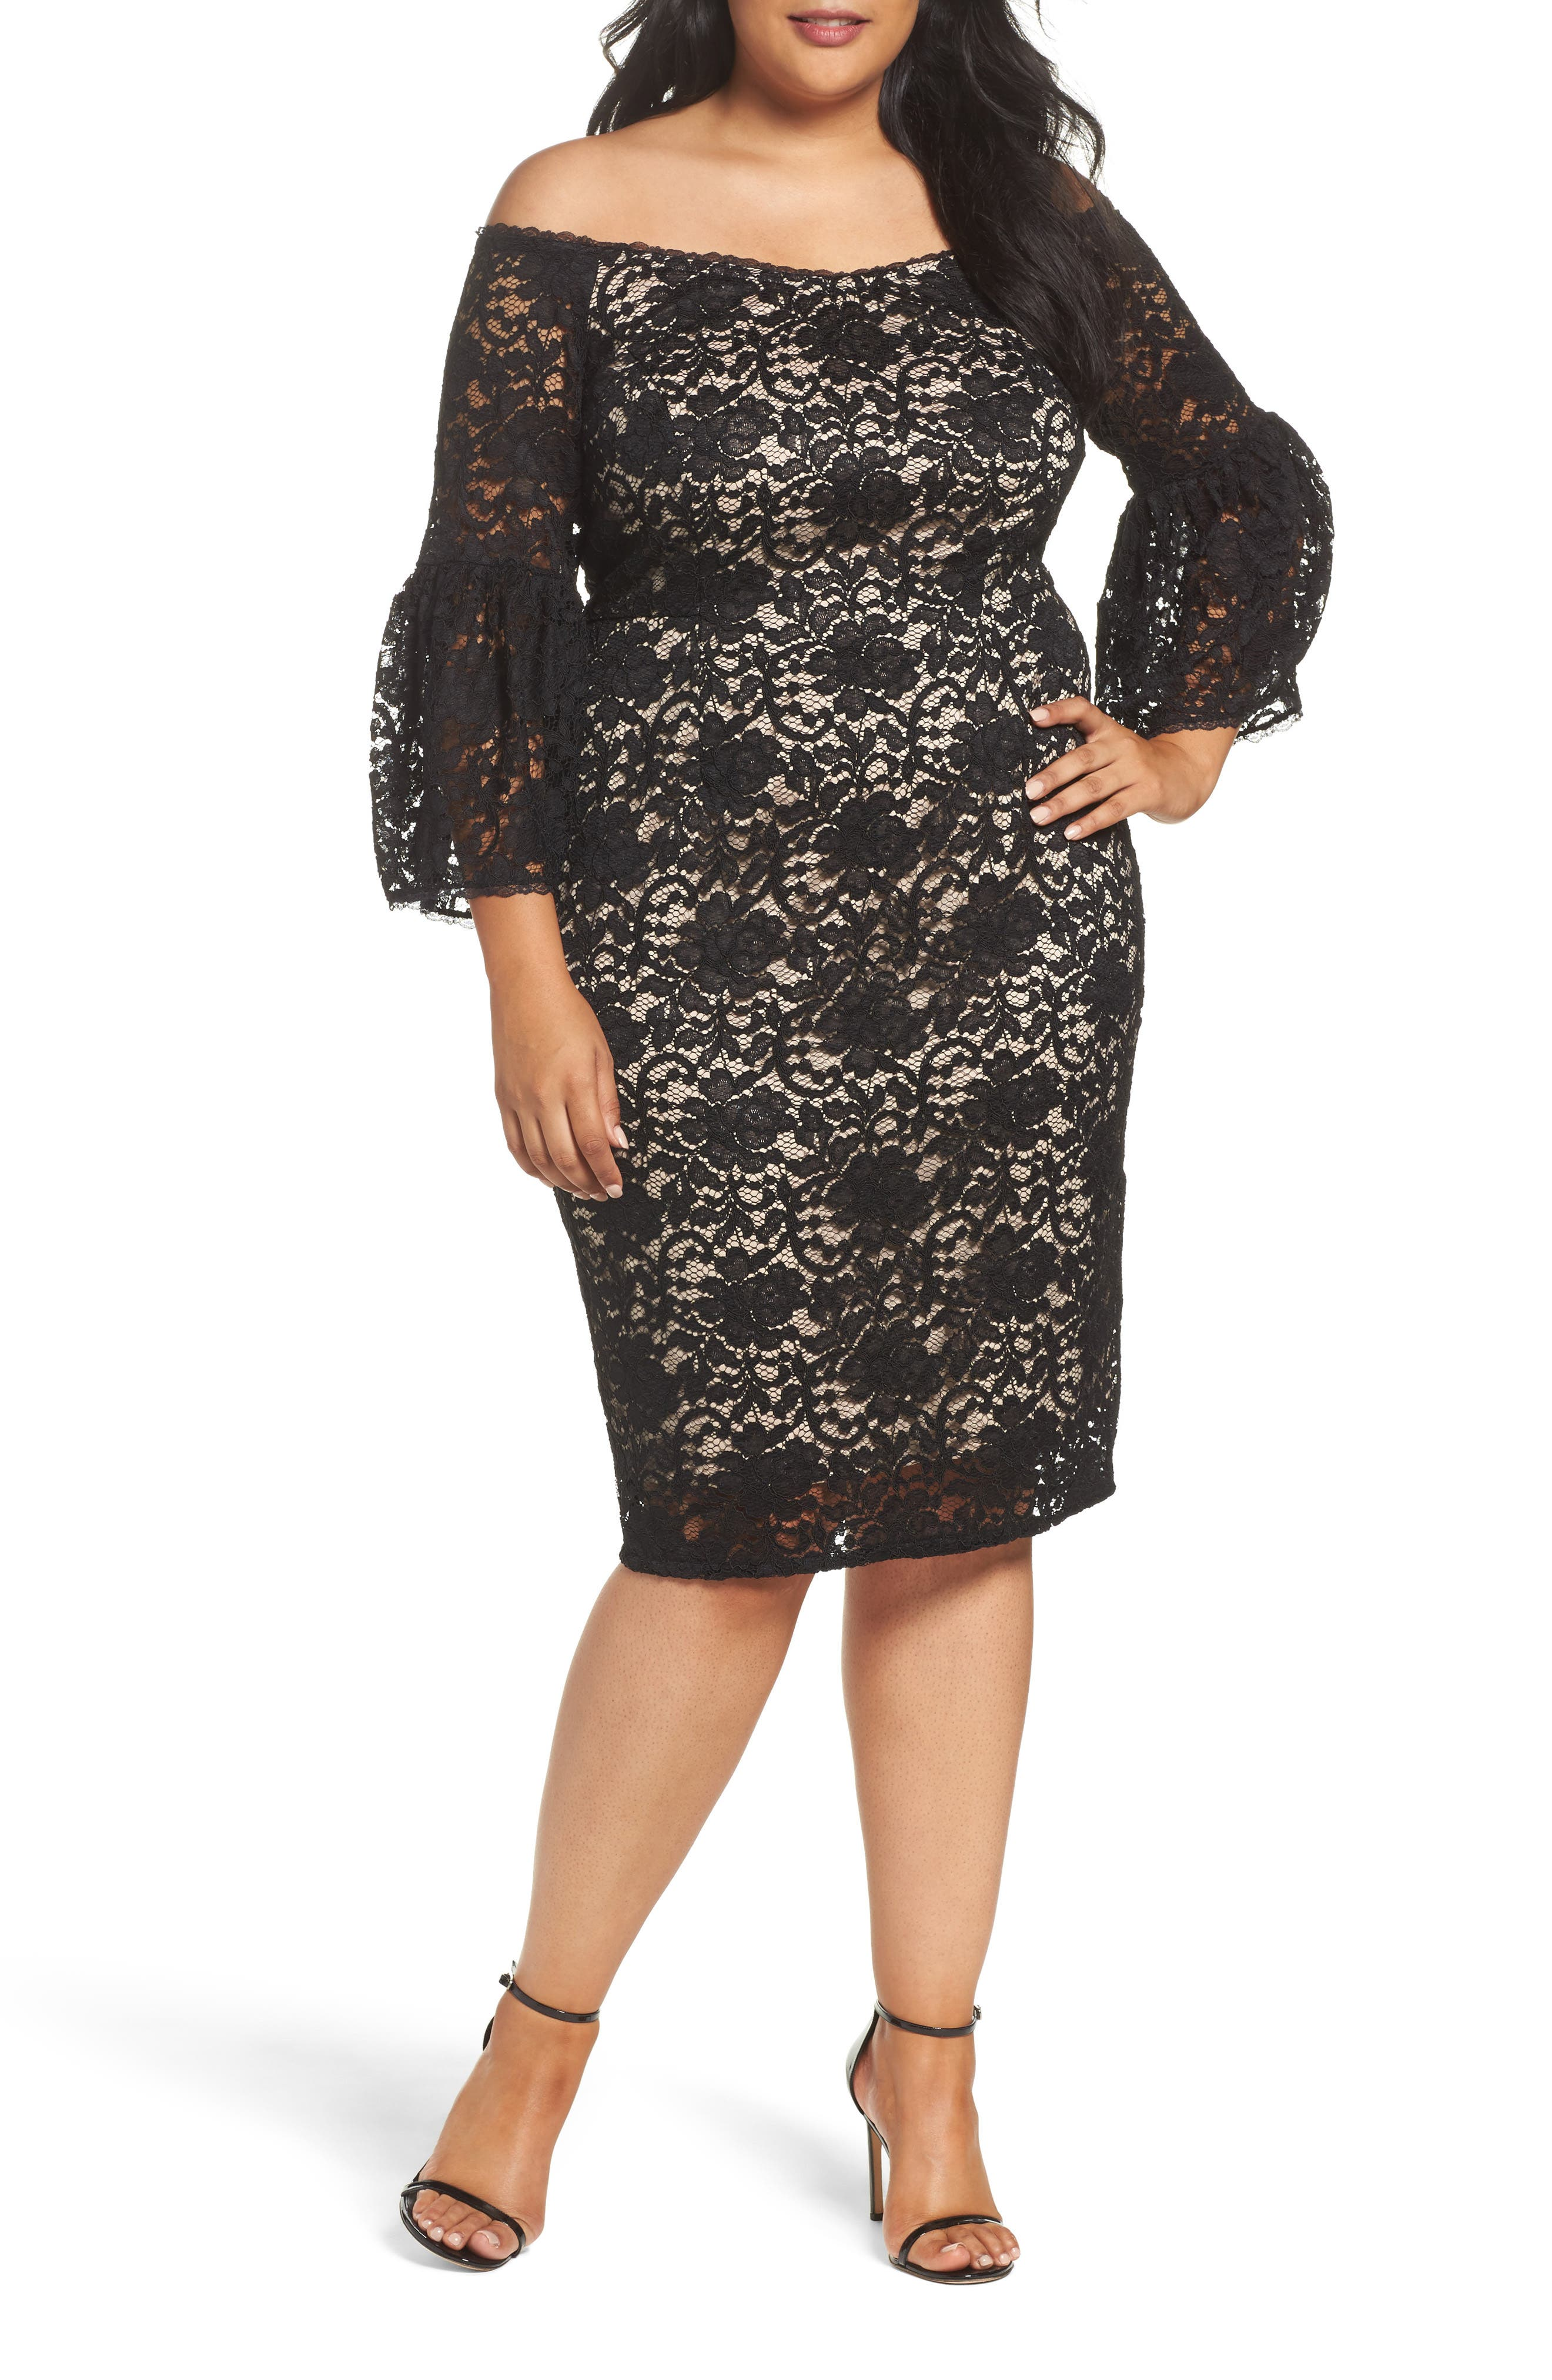 Main Image - Adrianna Papell Juliet Off the Shoulder Lace Dress (Plus Size)